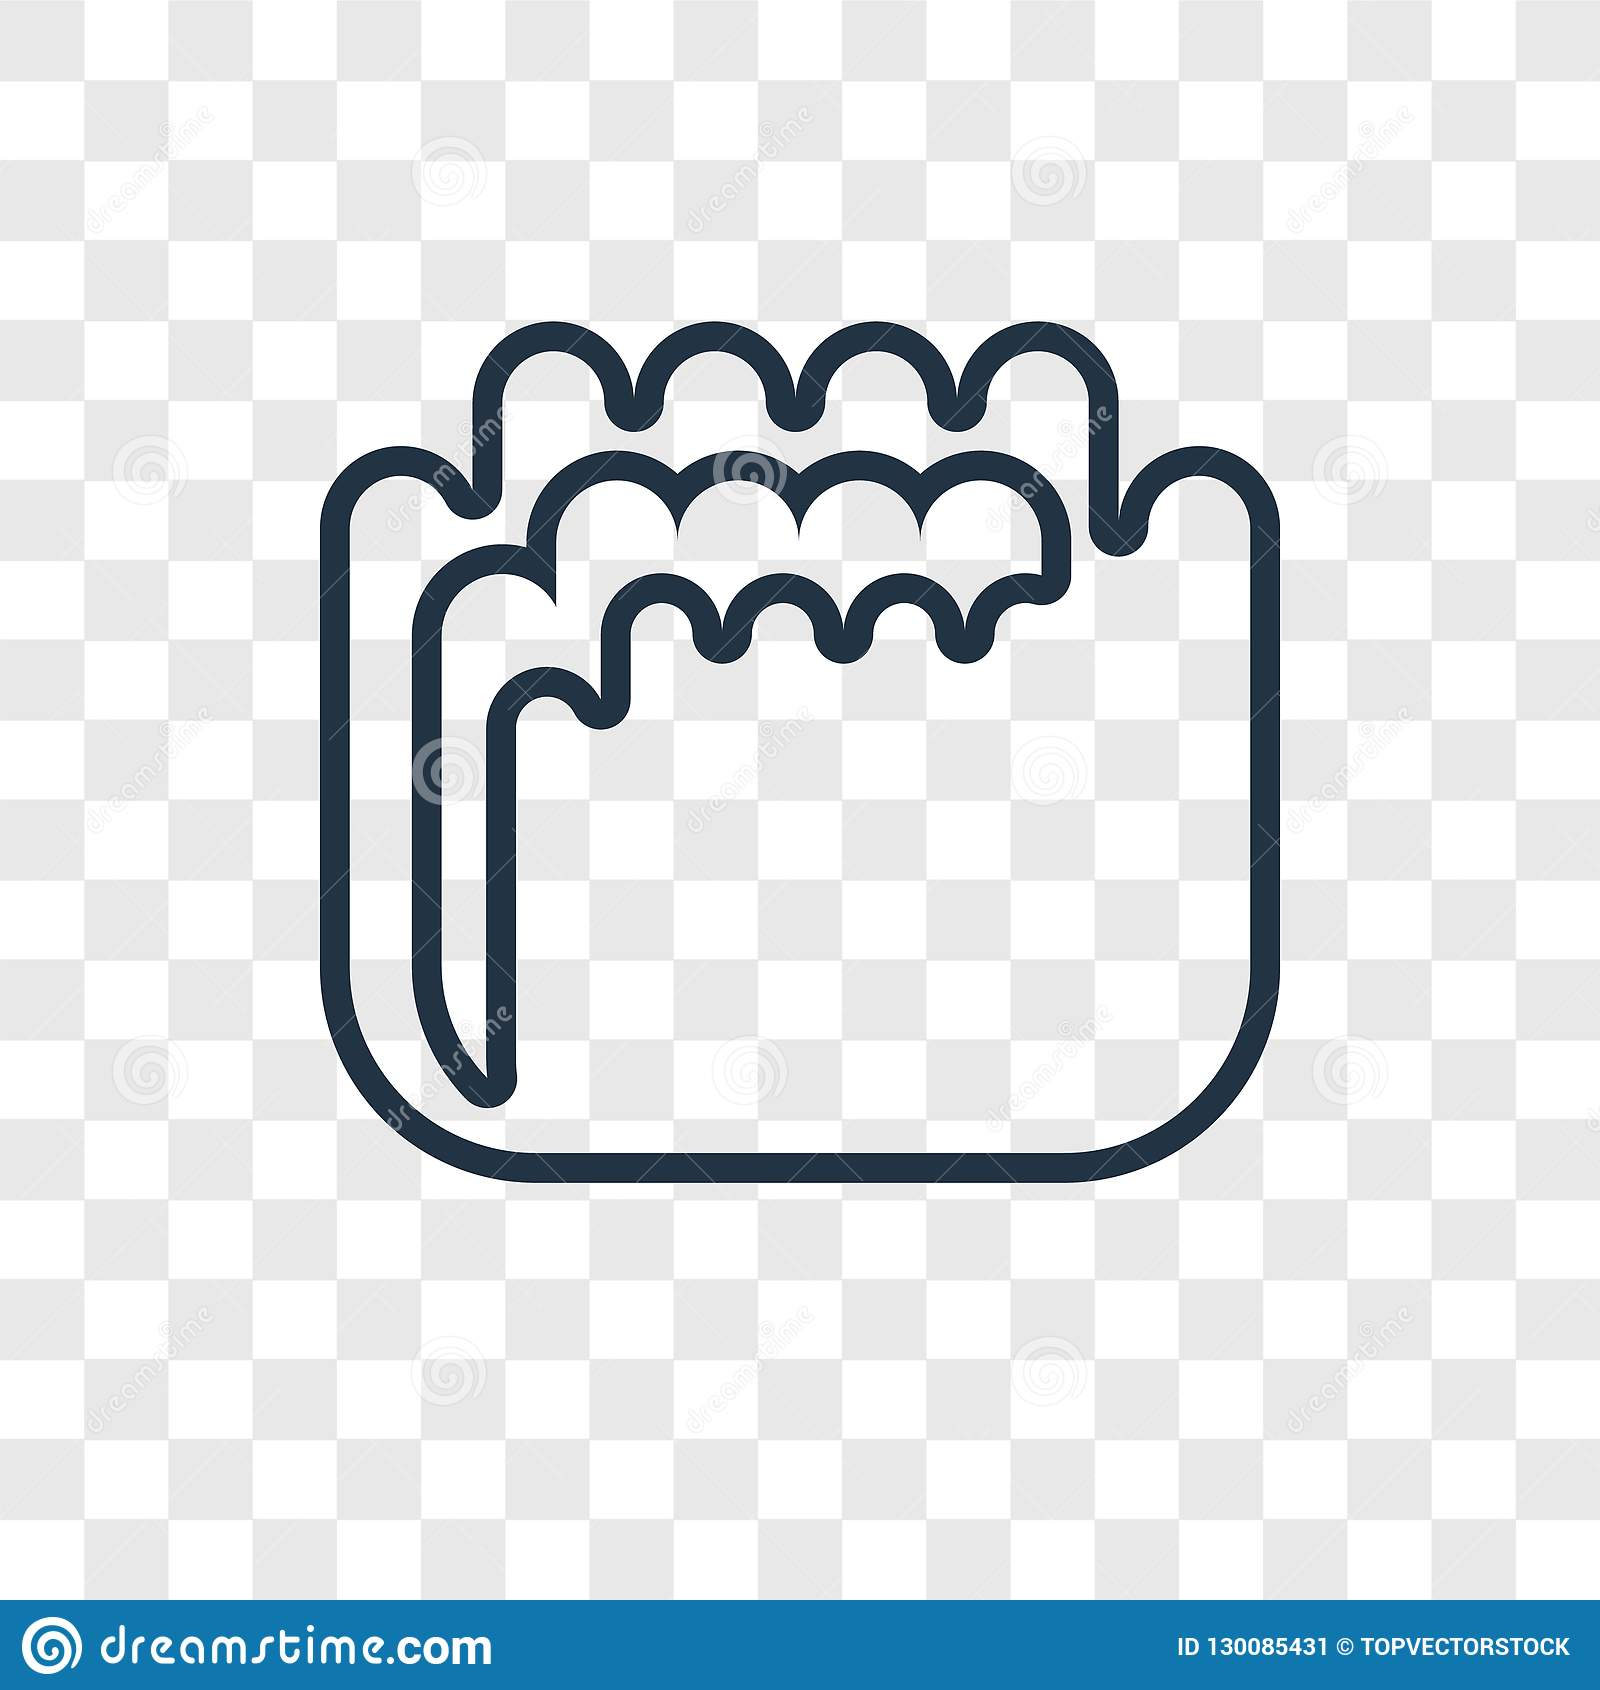 Mould concept vector linear icon isolated on transparent background, Mould concept transparency logo in outline style